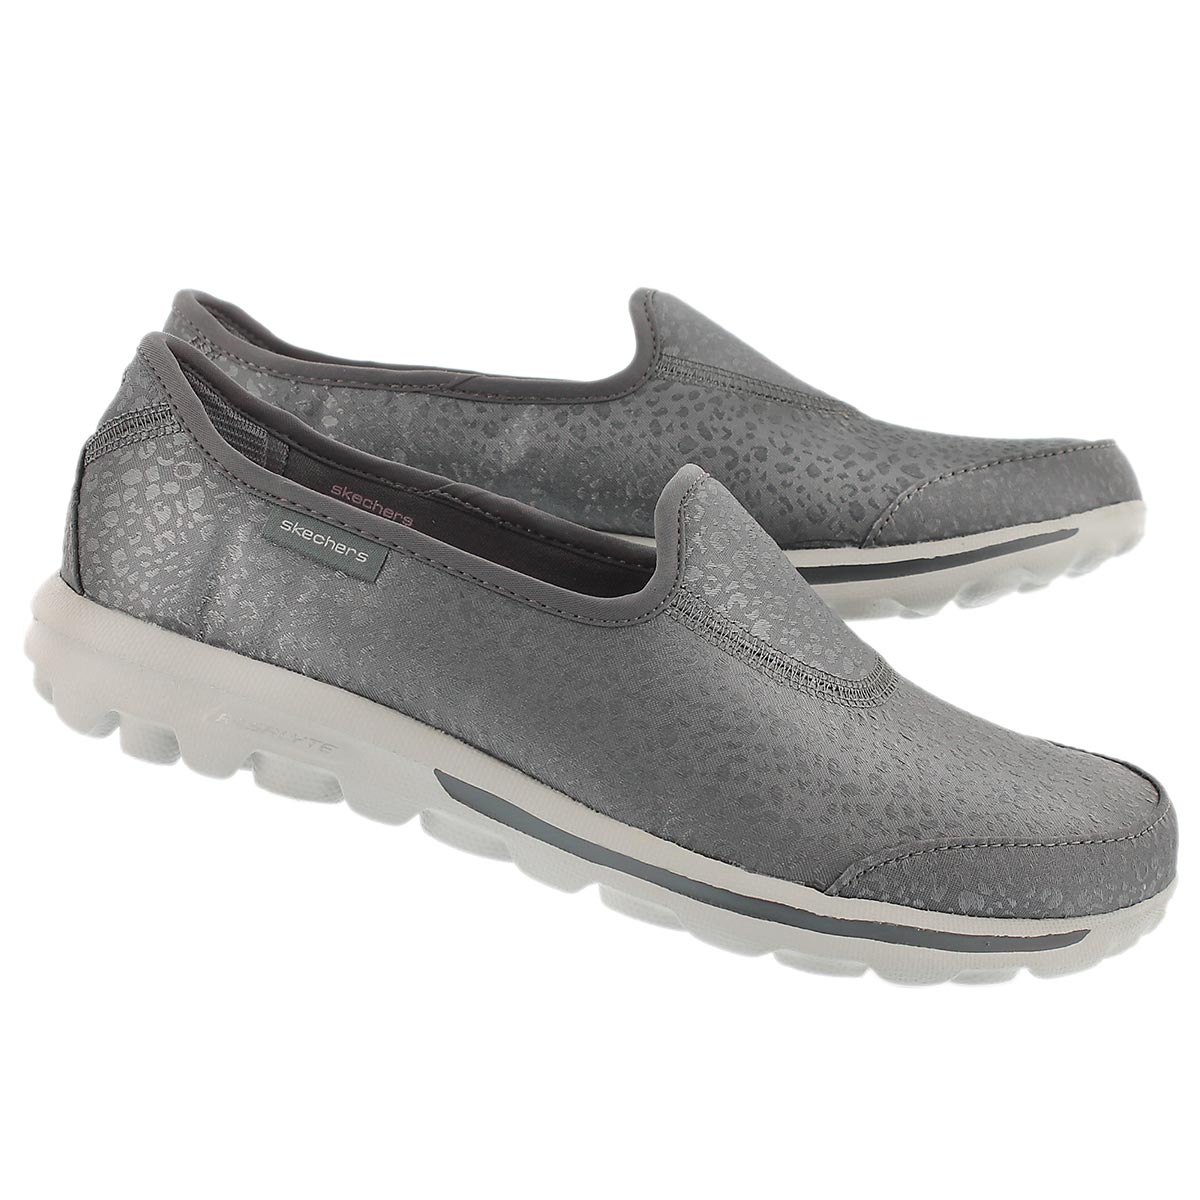 Lds GOwalk- Untamed char slip on